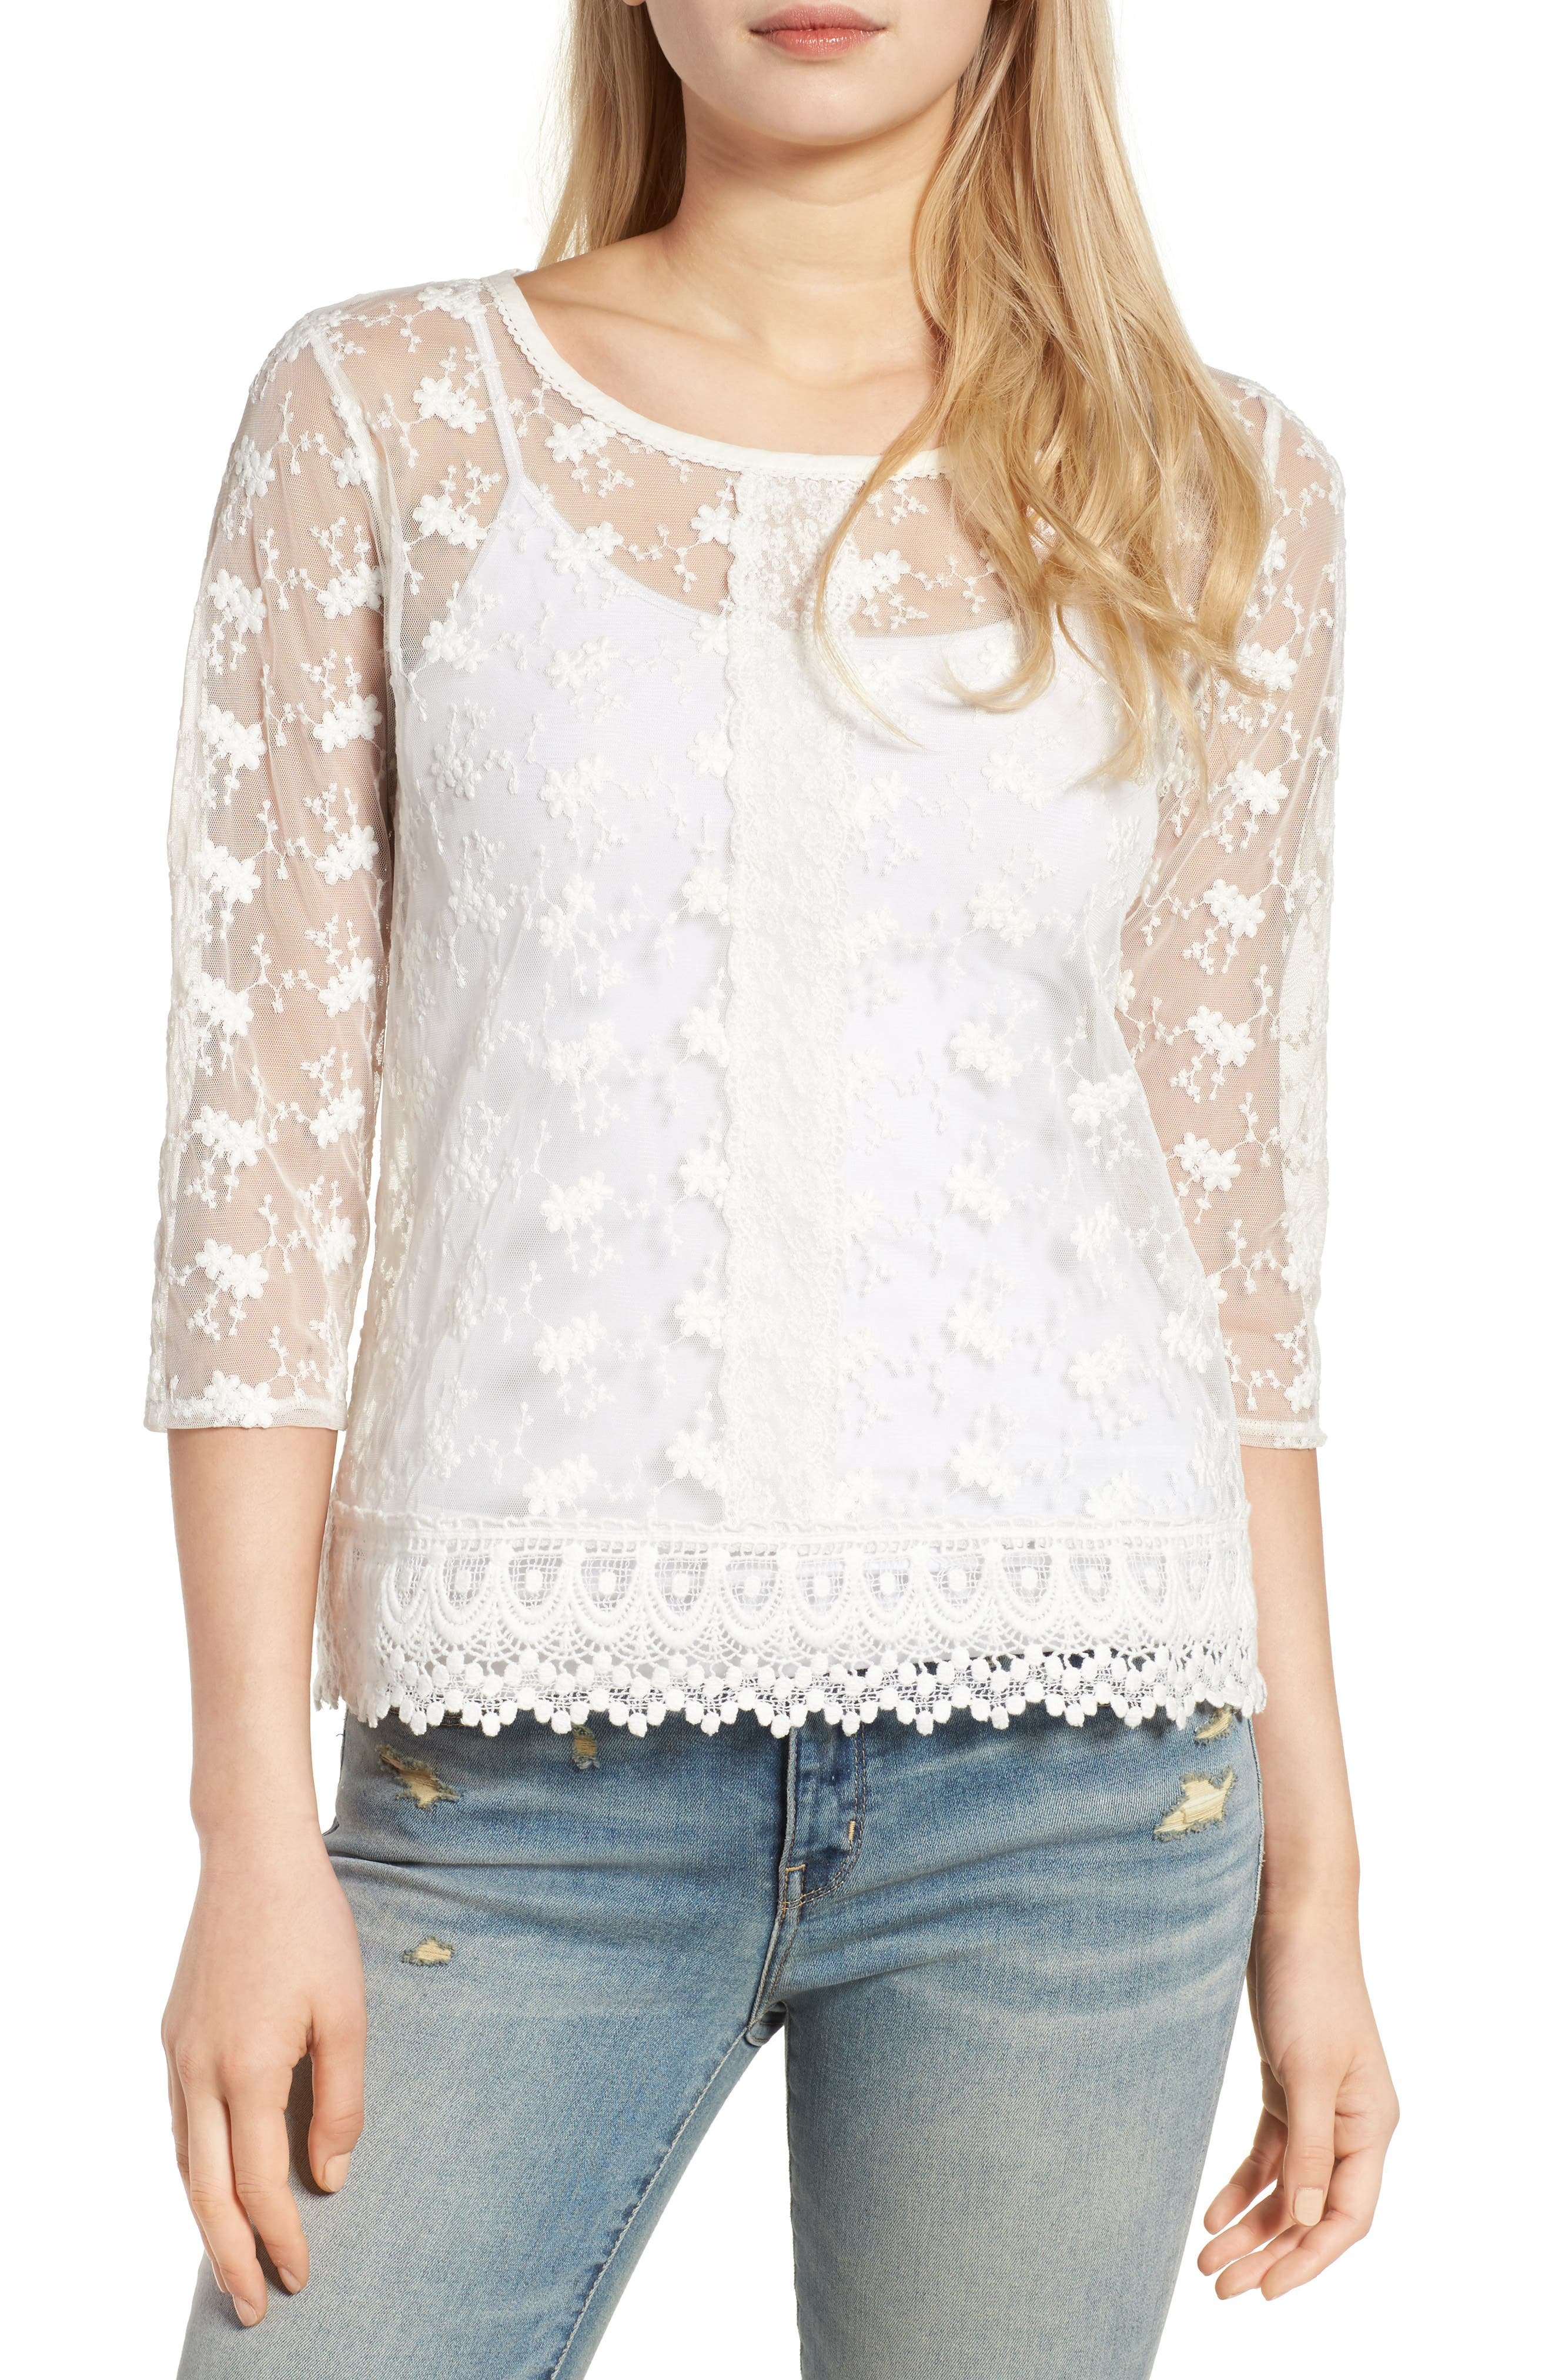 HINGE Embroidered Mesh Top